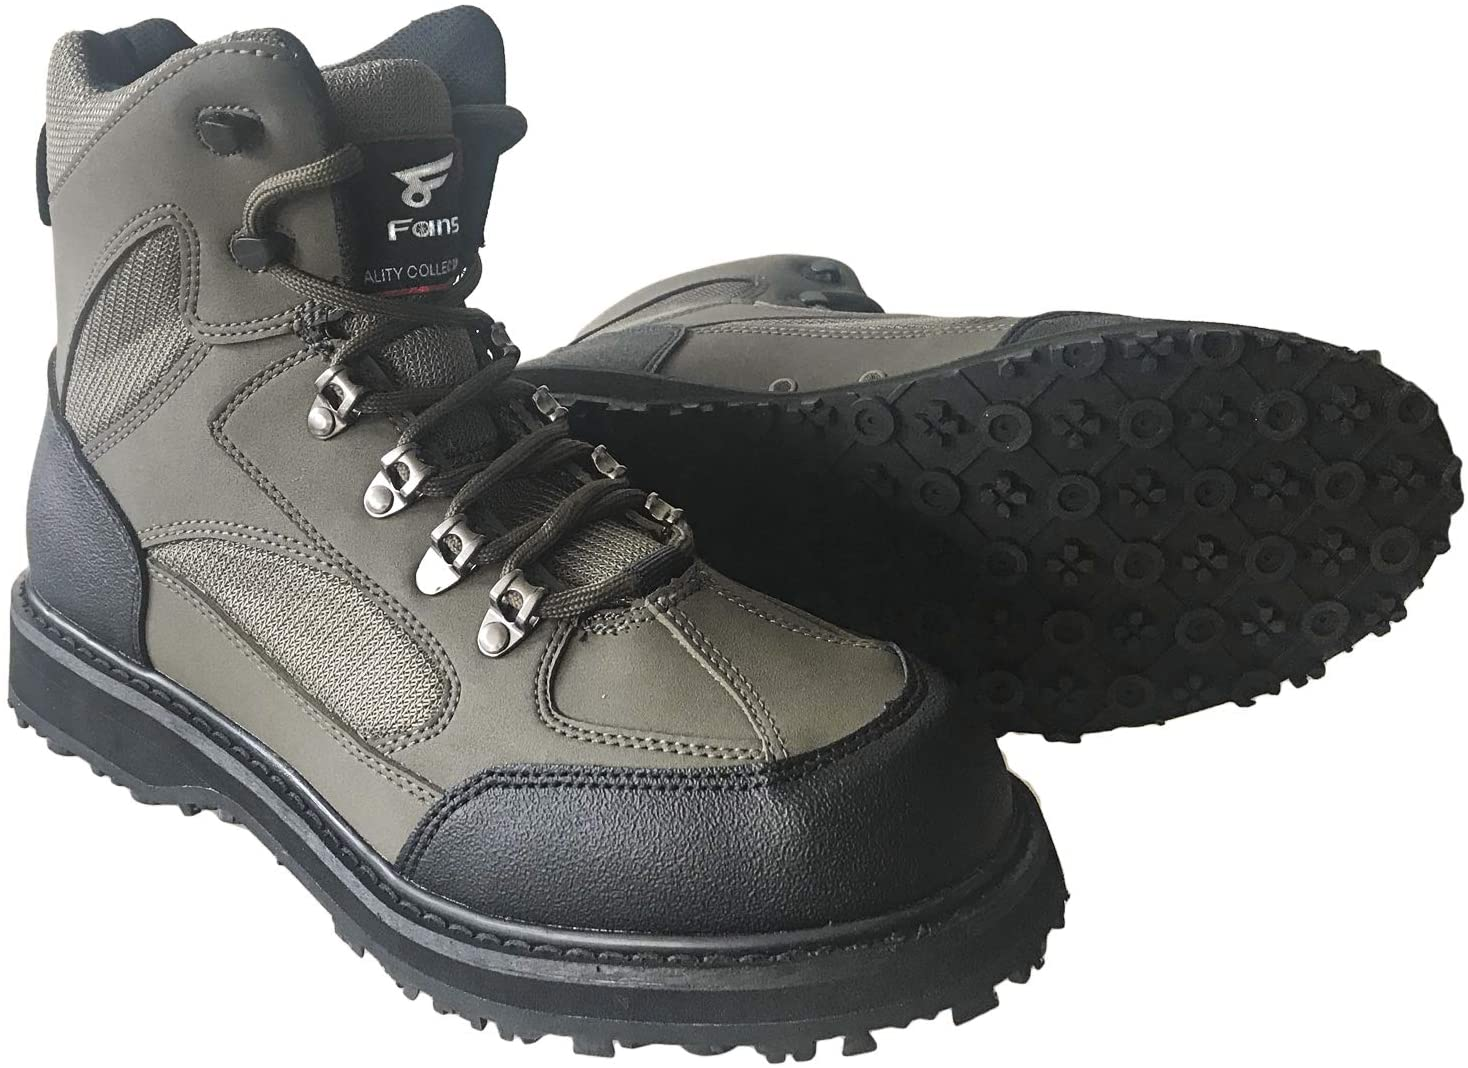 best wet wading boots for fishing and hunting